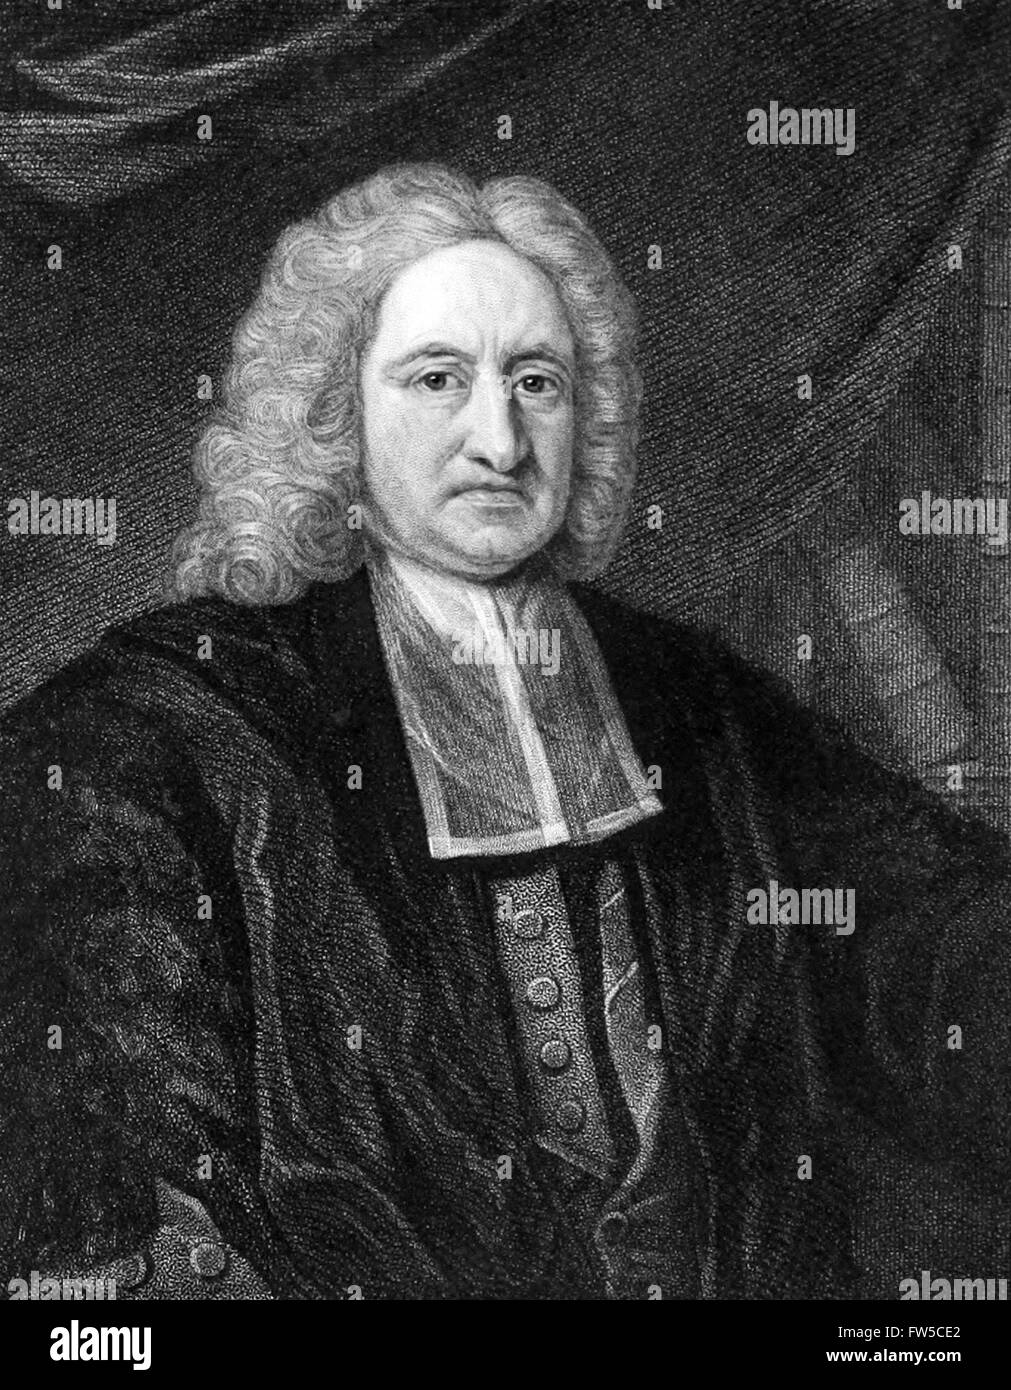 Edmond Halley (1656-1742) English astronomer and thematic cartographer. Engraving by W.T. Fry. See description for - Stock Image